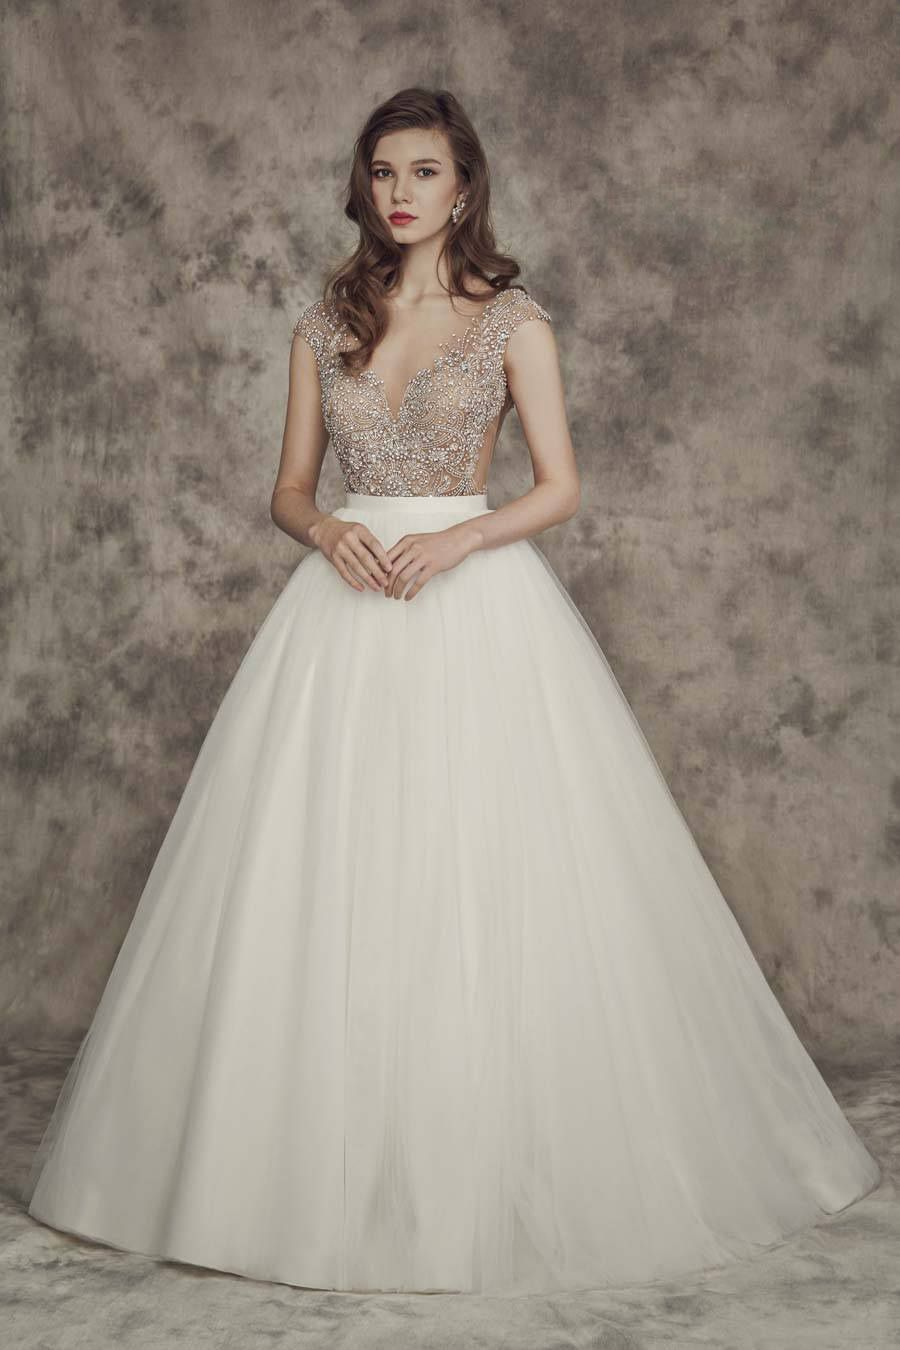 Carrie calla blanche pinterest bridal boutique offering a princess inspired look in a traditional ball gown silhouette this wedding dress exudes both timeless grace and contemporary charm with a ombrellifo Gallery